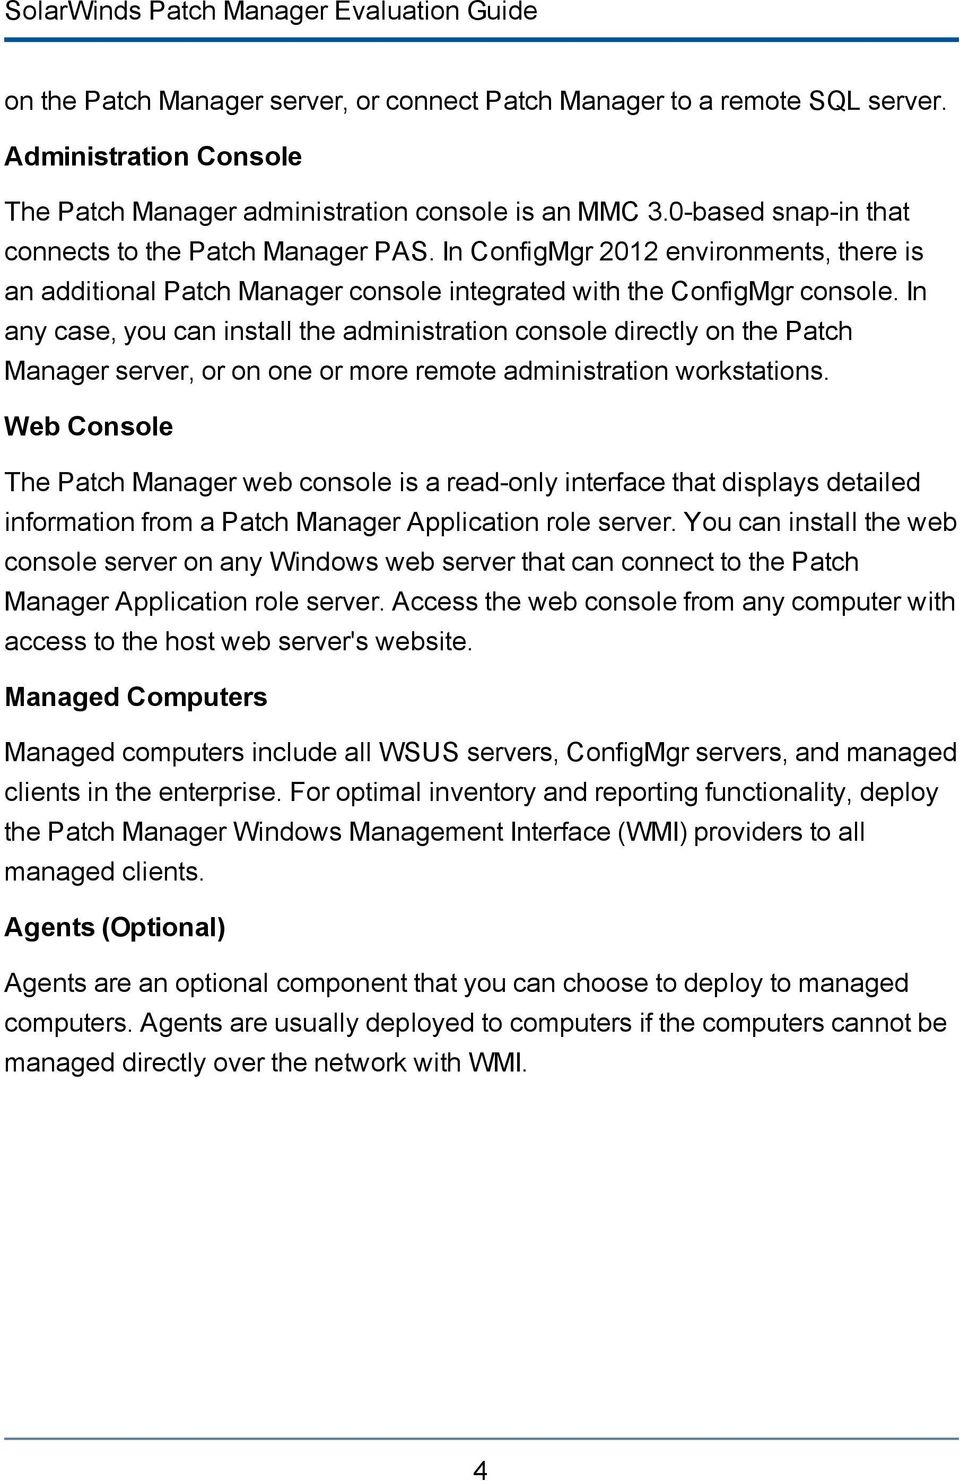 In any case, you can install the administration console directly on the Patch Manager server, or on one or more remote administration workstations.